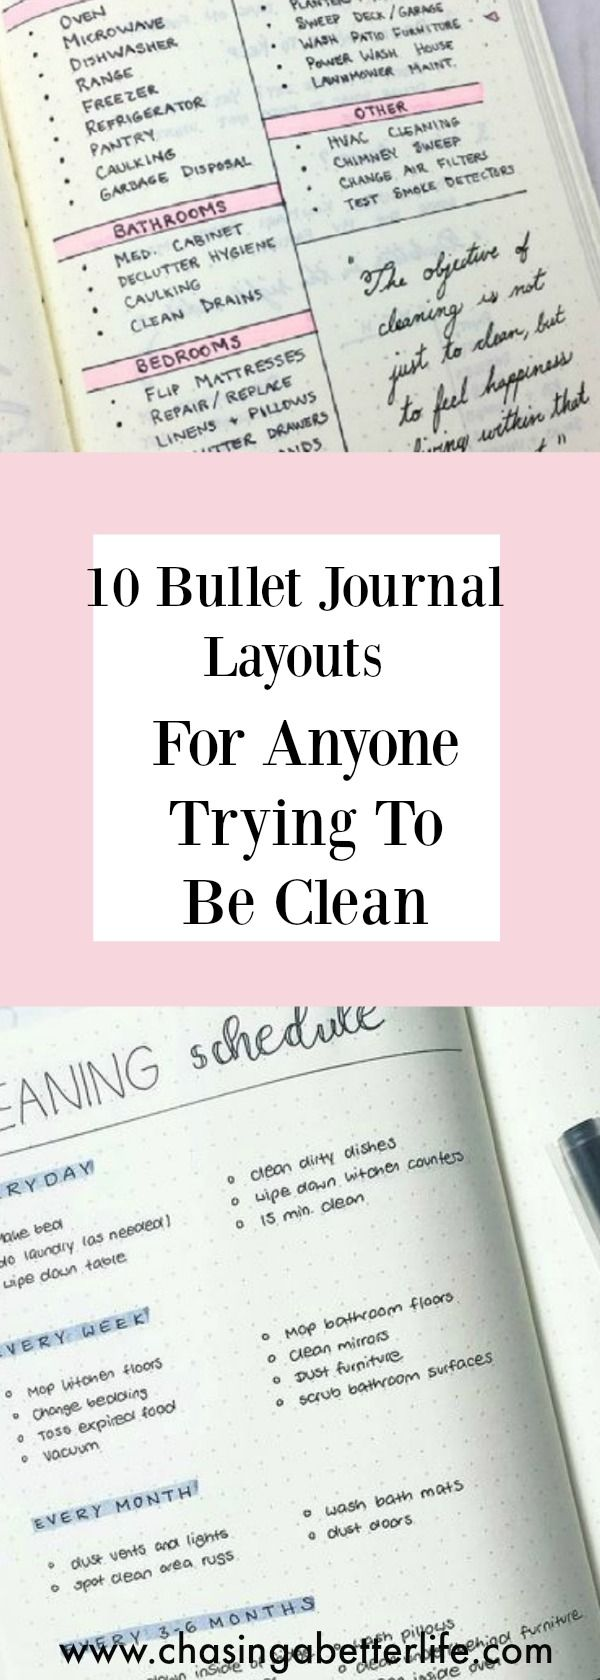 10 Bullet Journal Layouts For Anyone Trying To Be Clean#bujo #clean